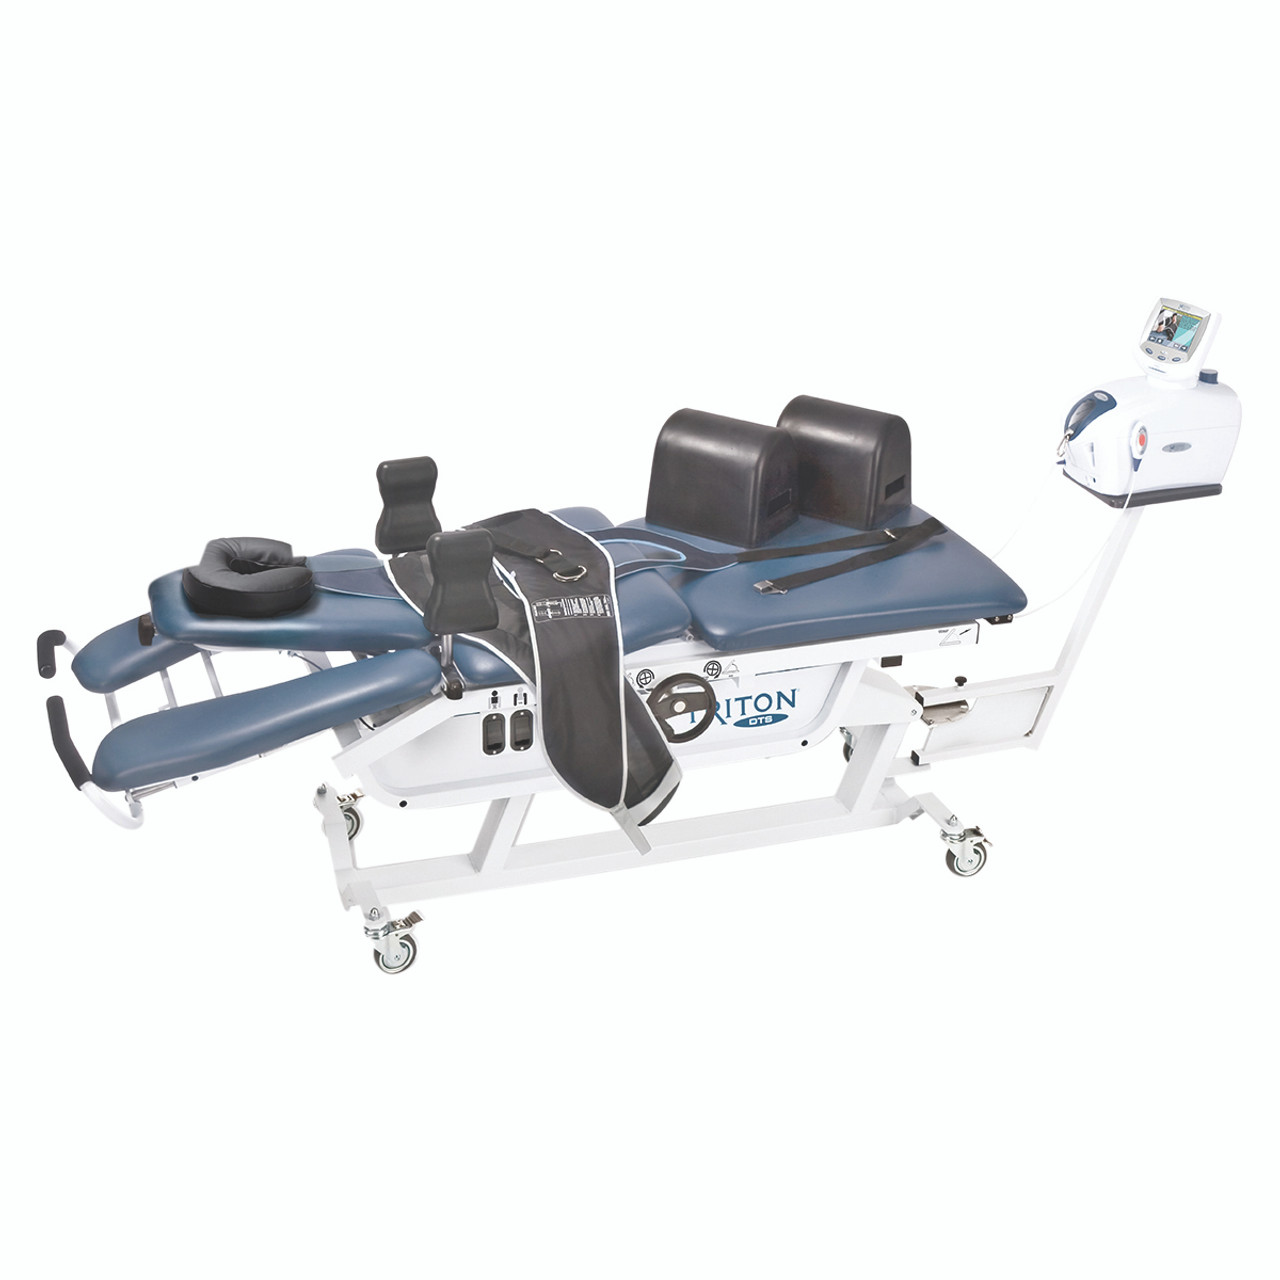 Triton DTS¨ Traction Unit with Basic Accessory Package